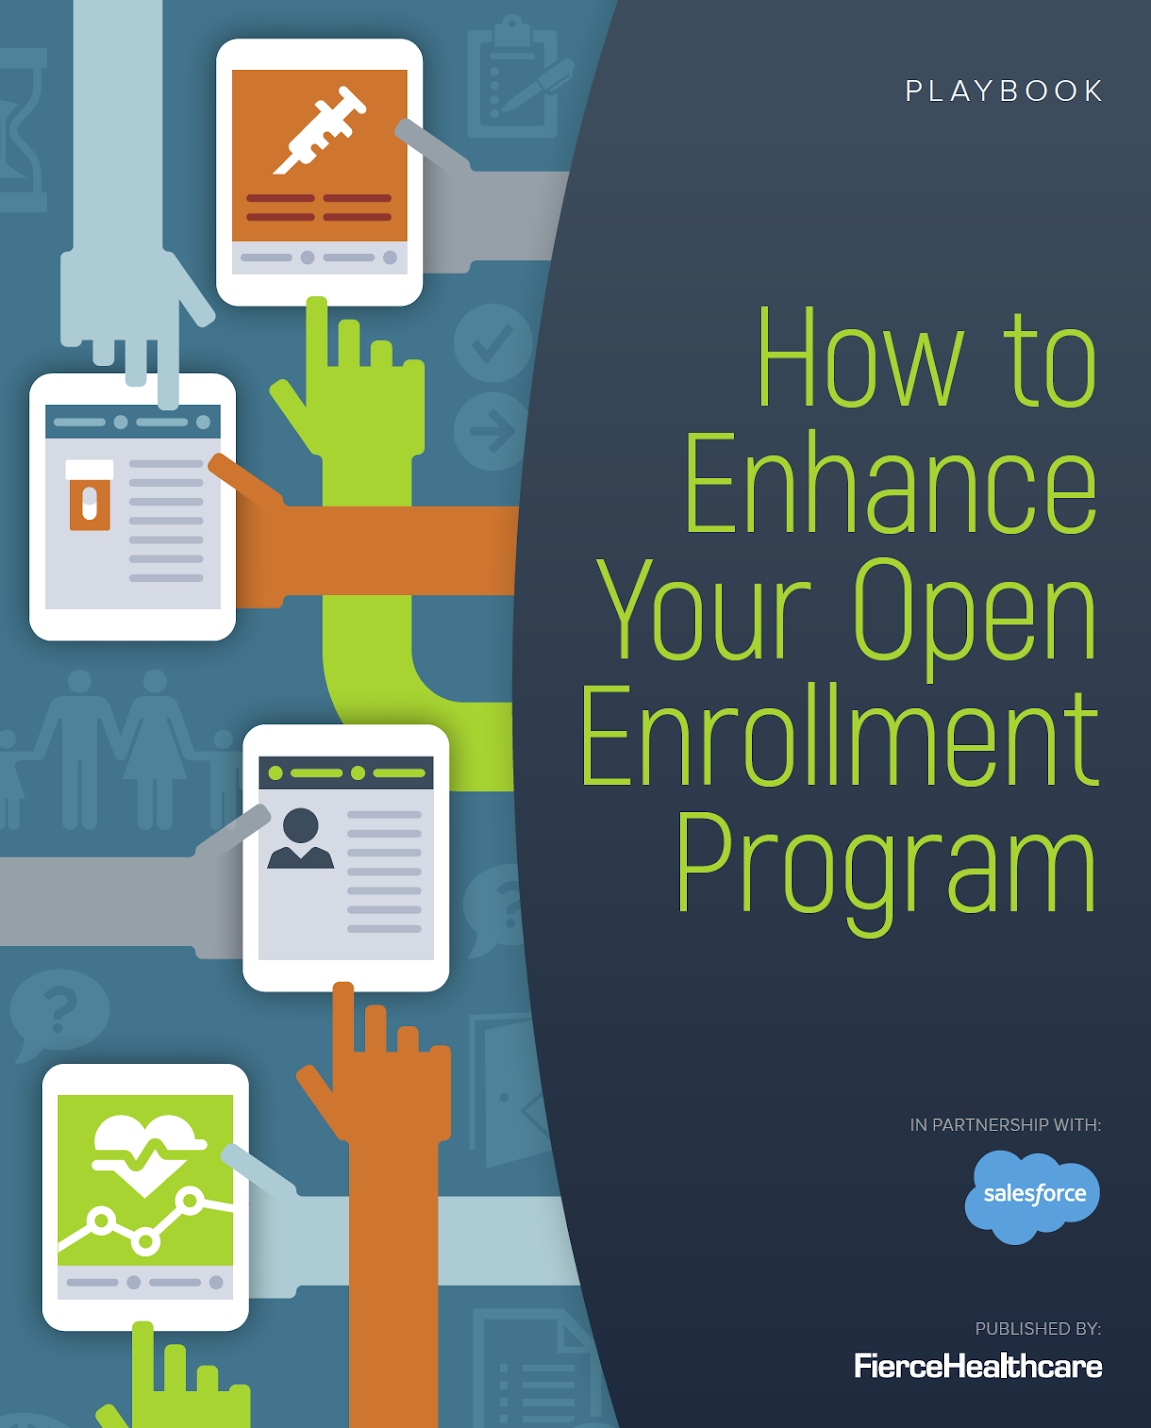 How to Enhance Open Enrollment (OE) Program